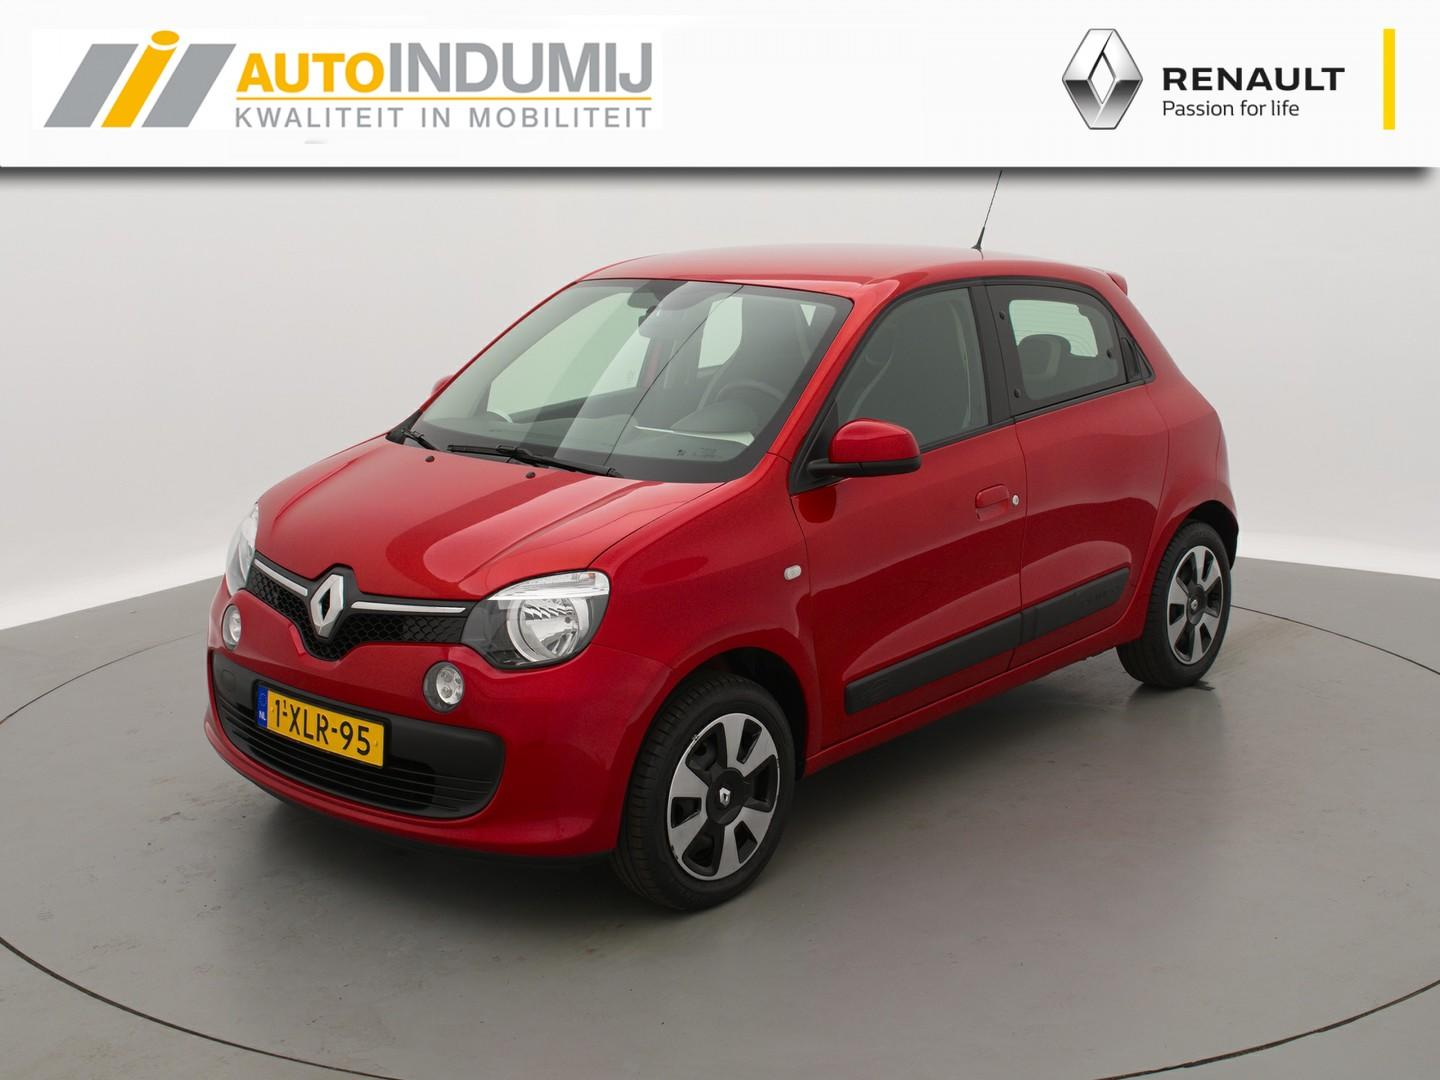 Renault Twingo 1.0 sce expression airco / pdc / armsteun